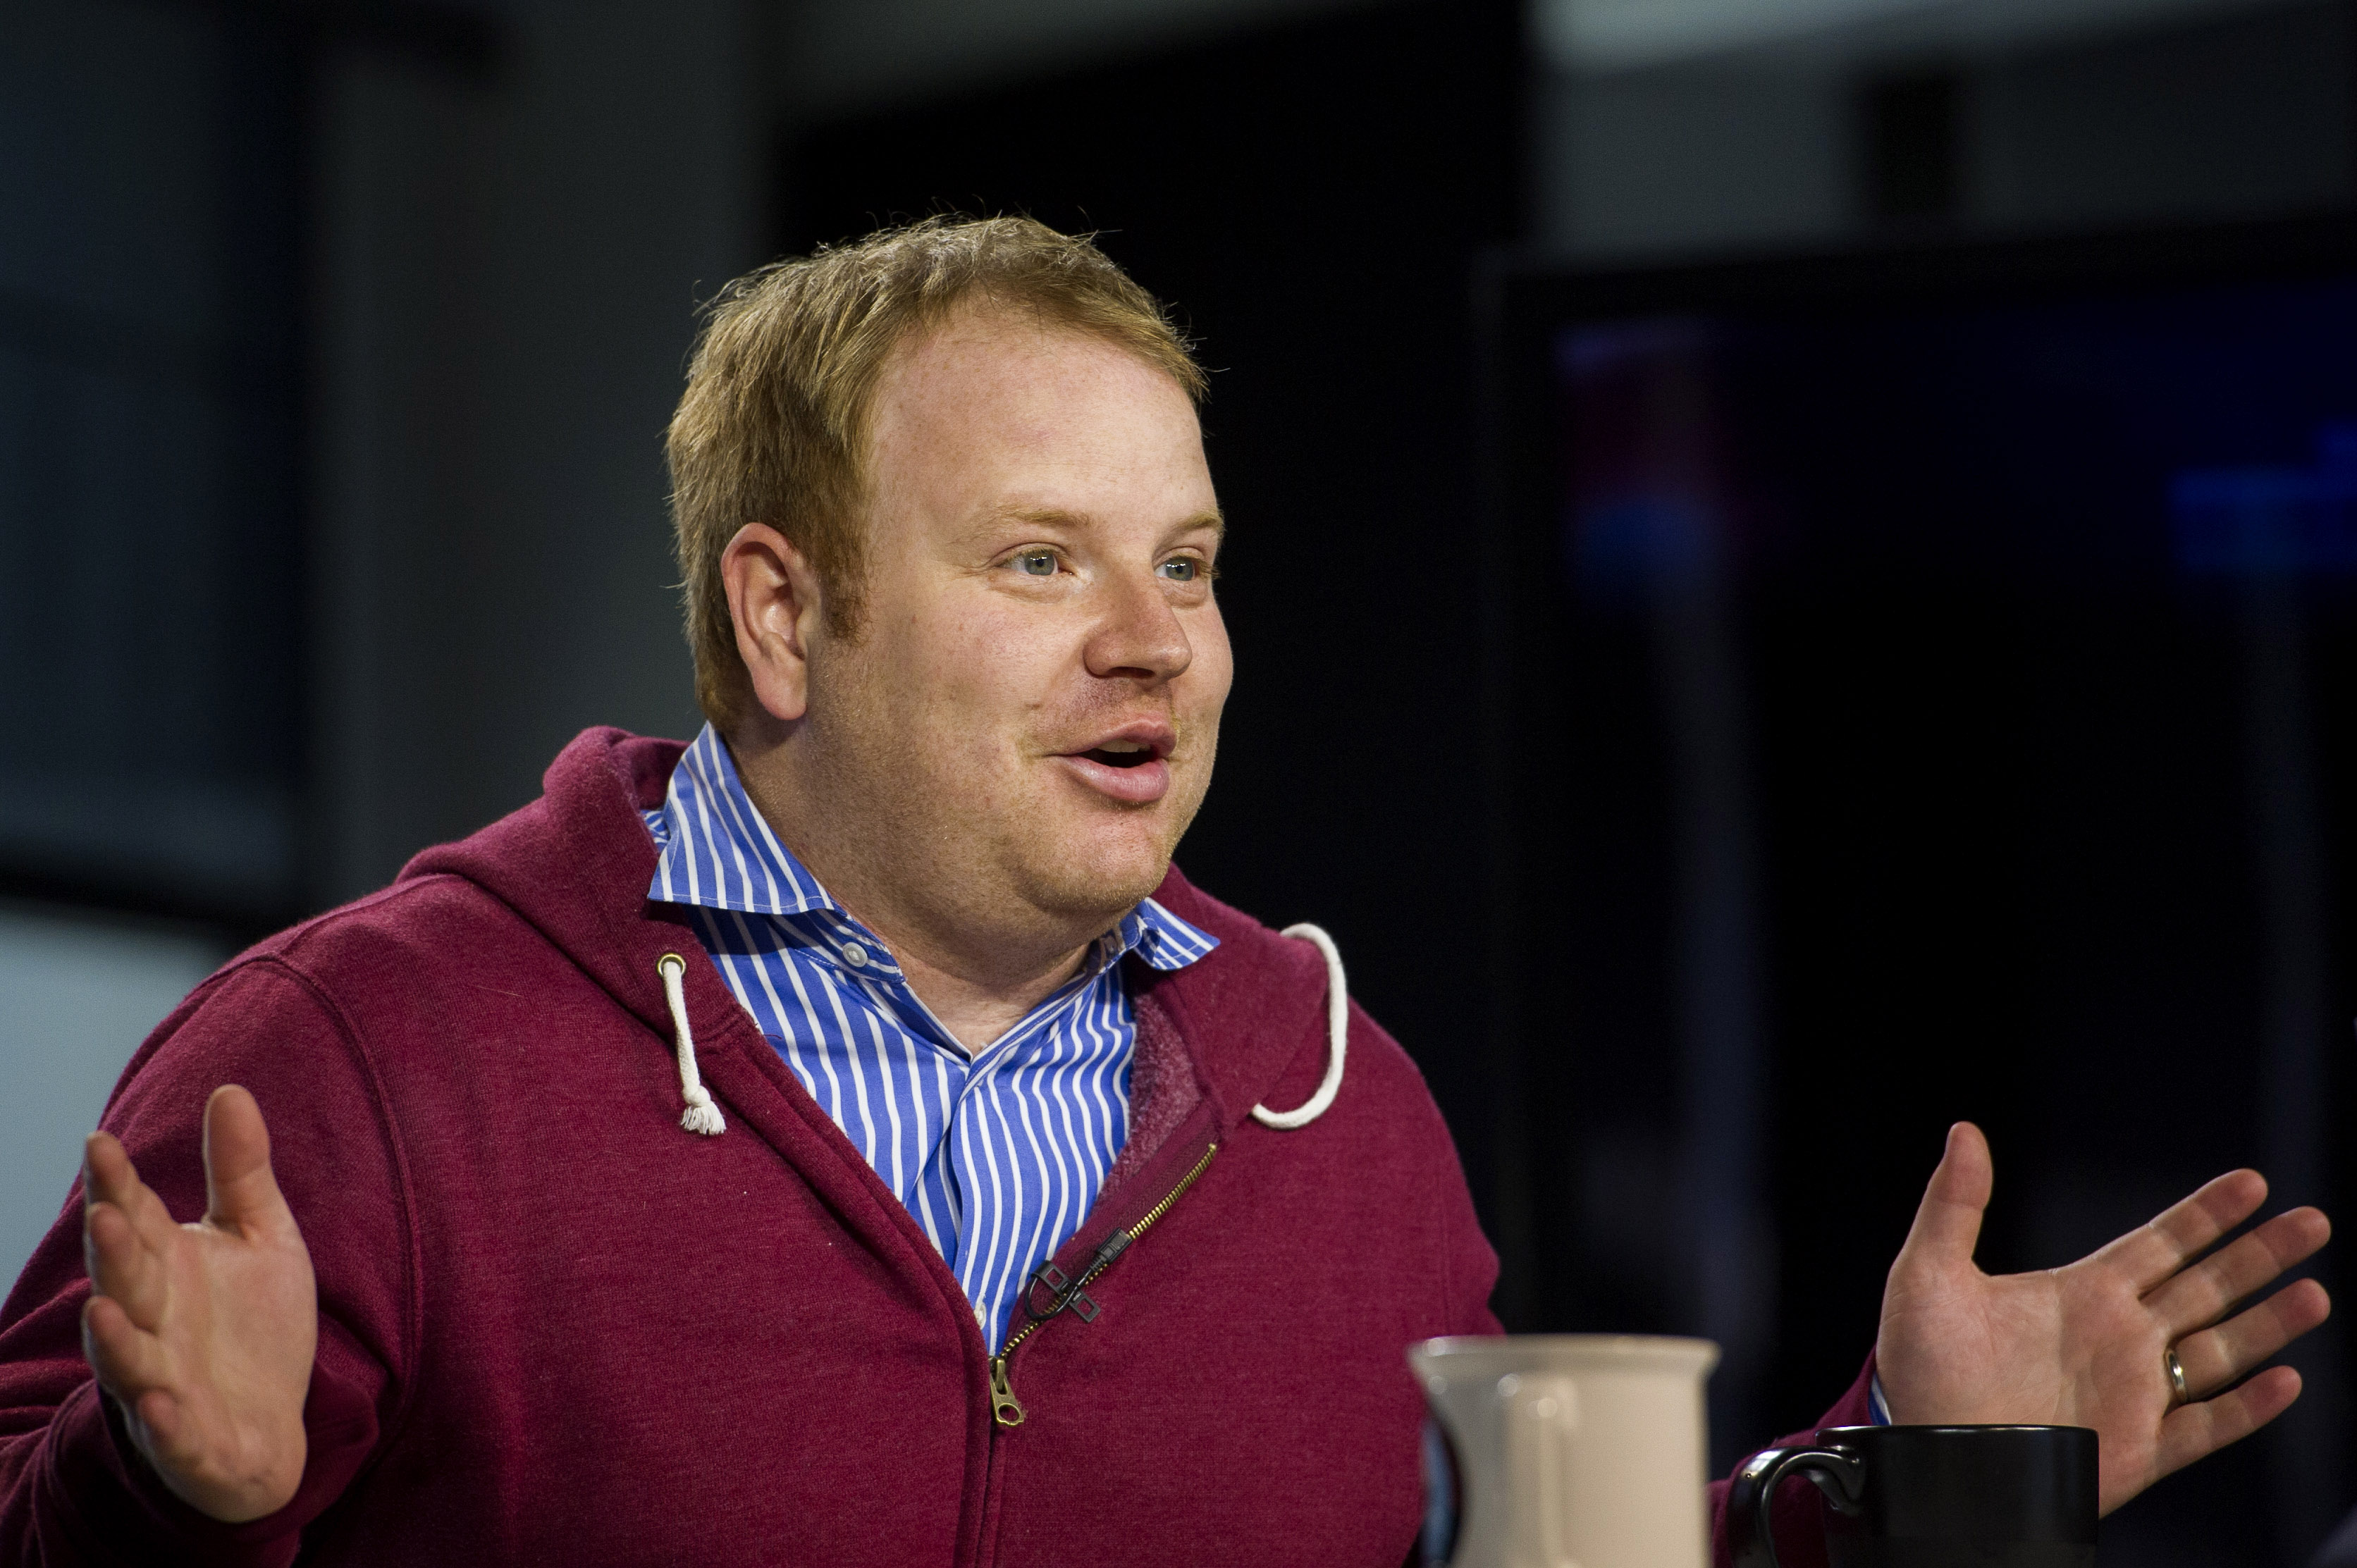 Zenefits Chief Executive Officer Parker Conrad Interview